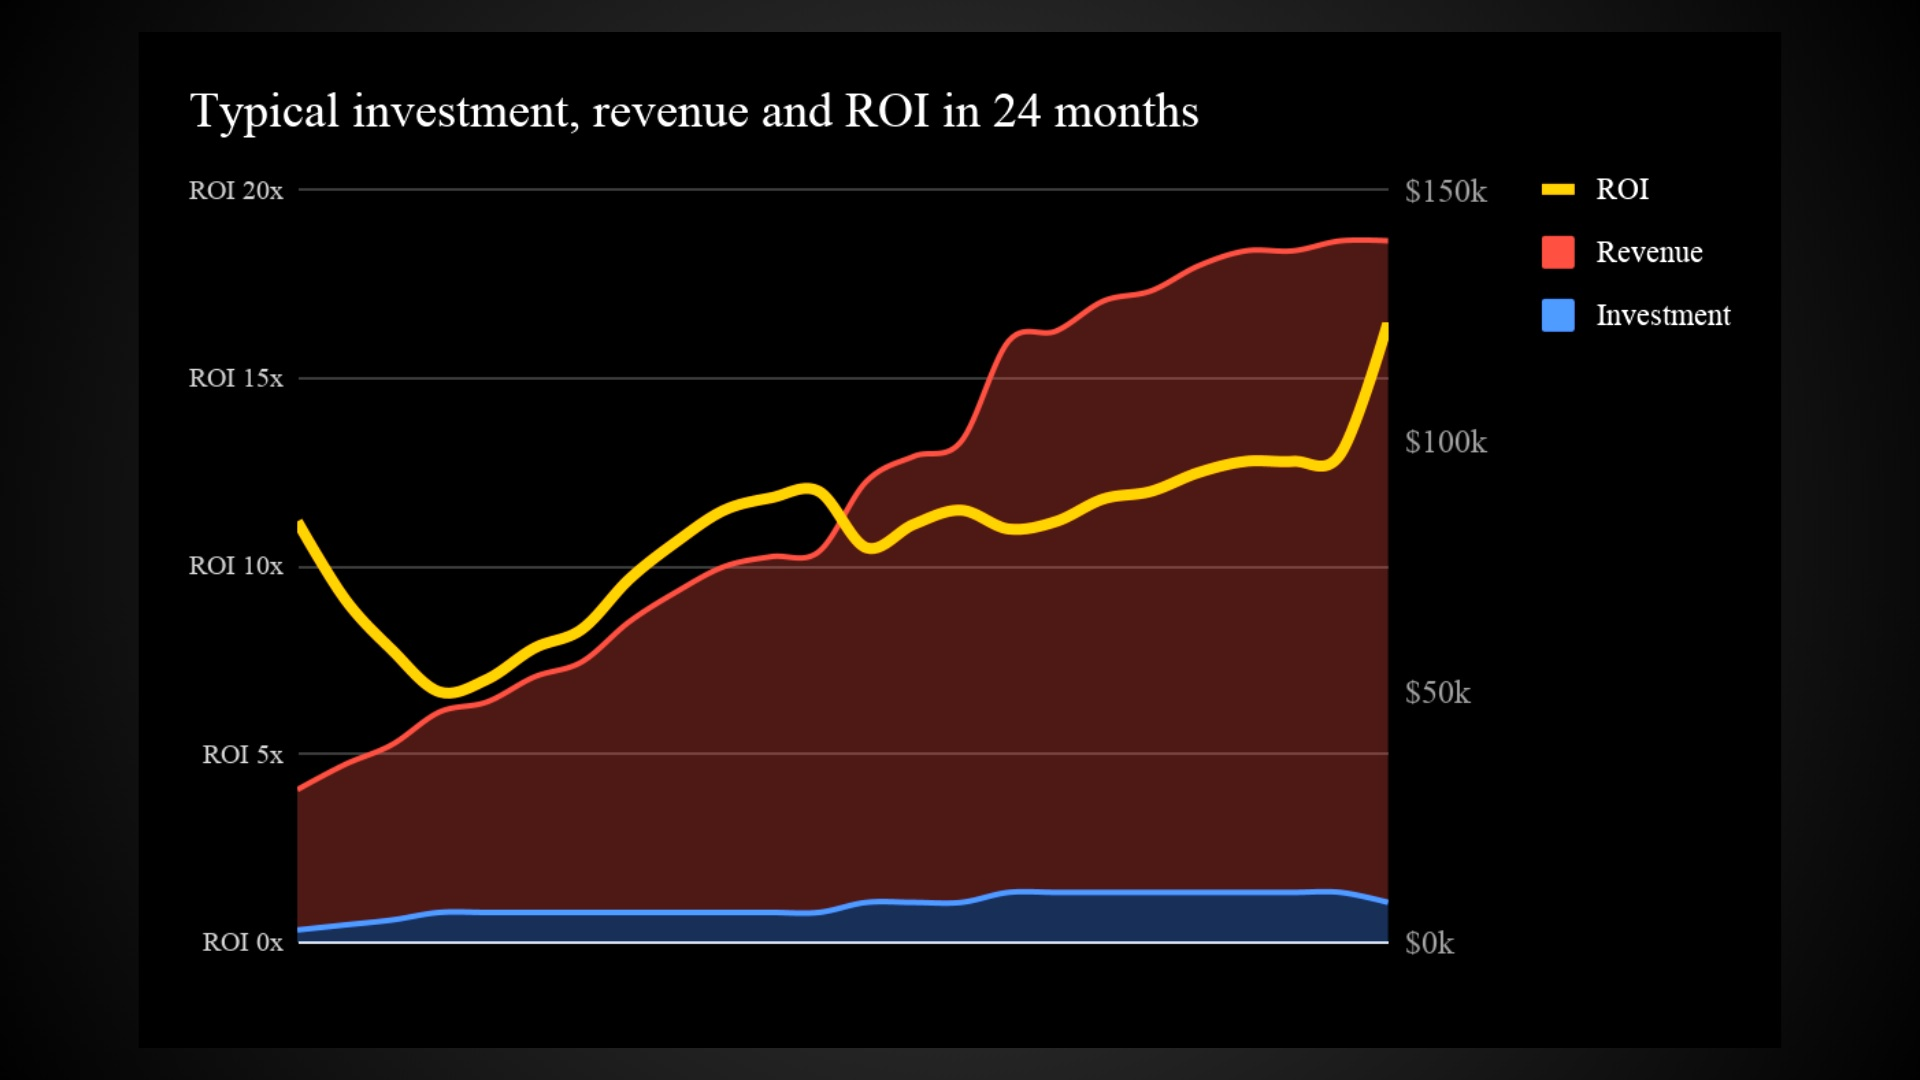 This graph demonstrates the typical investment, revenue and ROI over a 24-month period